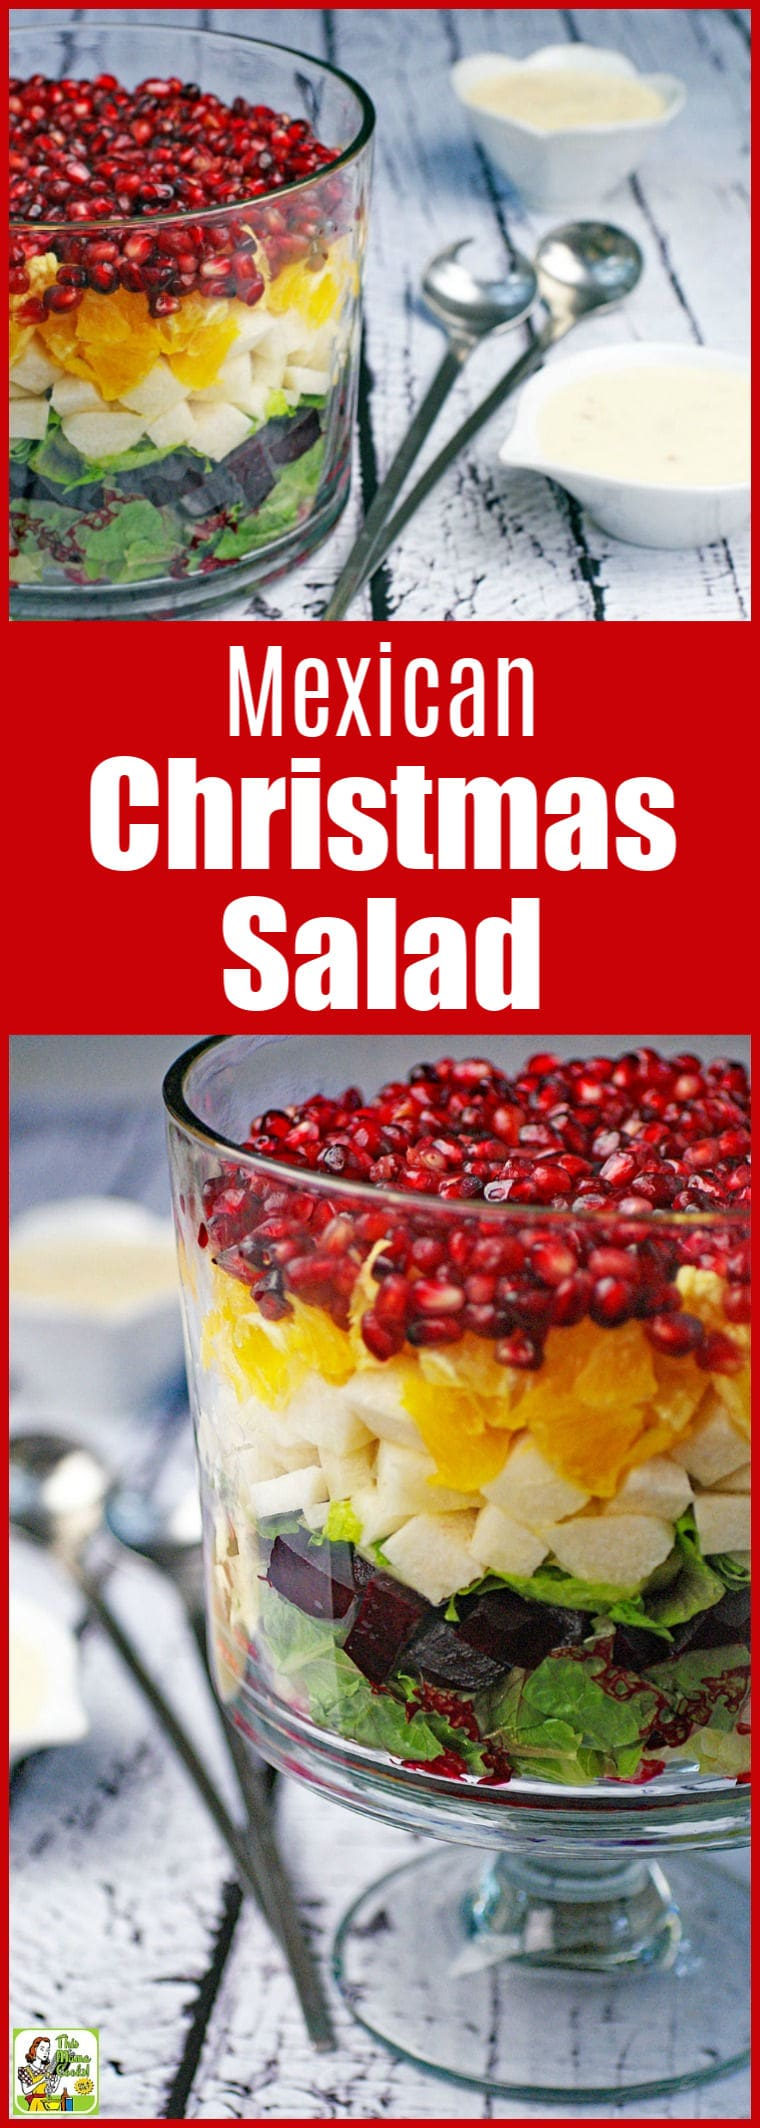 Learn how to make a Mexican Christmas Salad in a trifle bowl. This traditional Christmas Eve salad recipe is easy to make and healthy. It also makes a festive center piece for your holiday table. A vegetarian side dish that can be made vegan. #salad #saladrecipes #mexicanfoodrecipes #mexicanfood #christmas #healthyrecipes #healthyfood